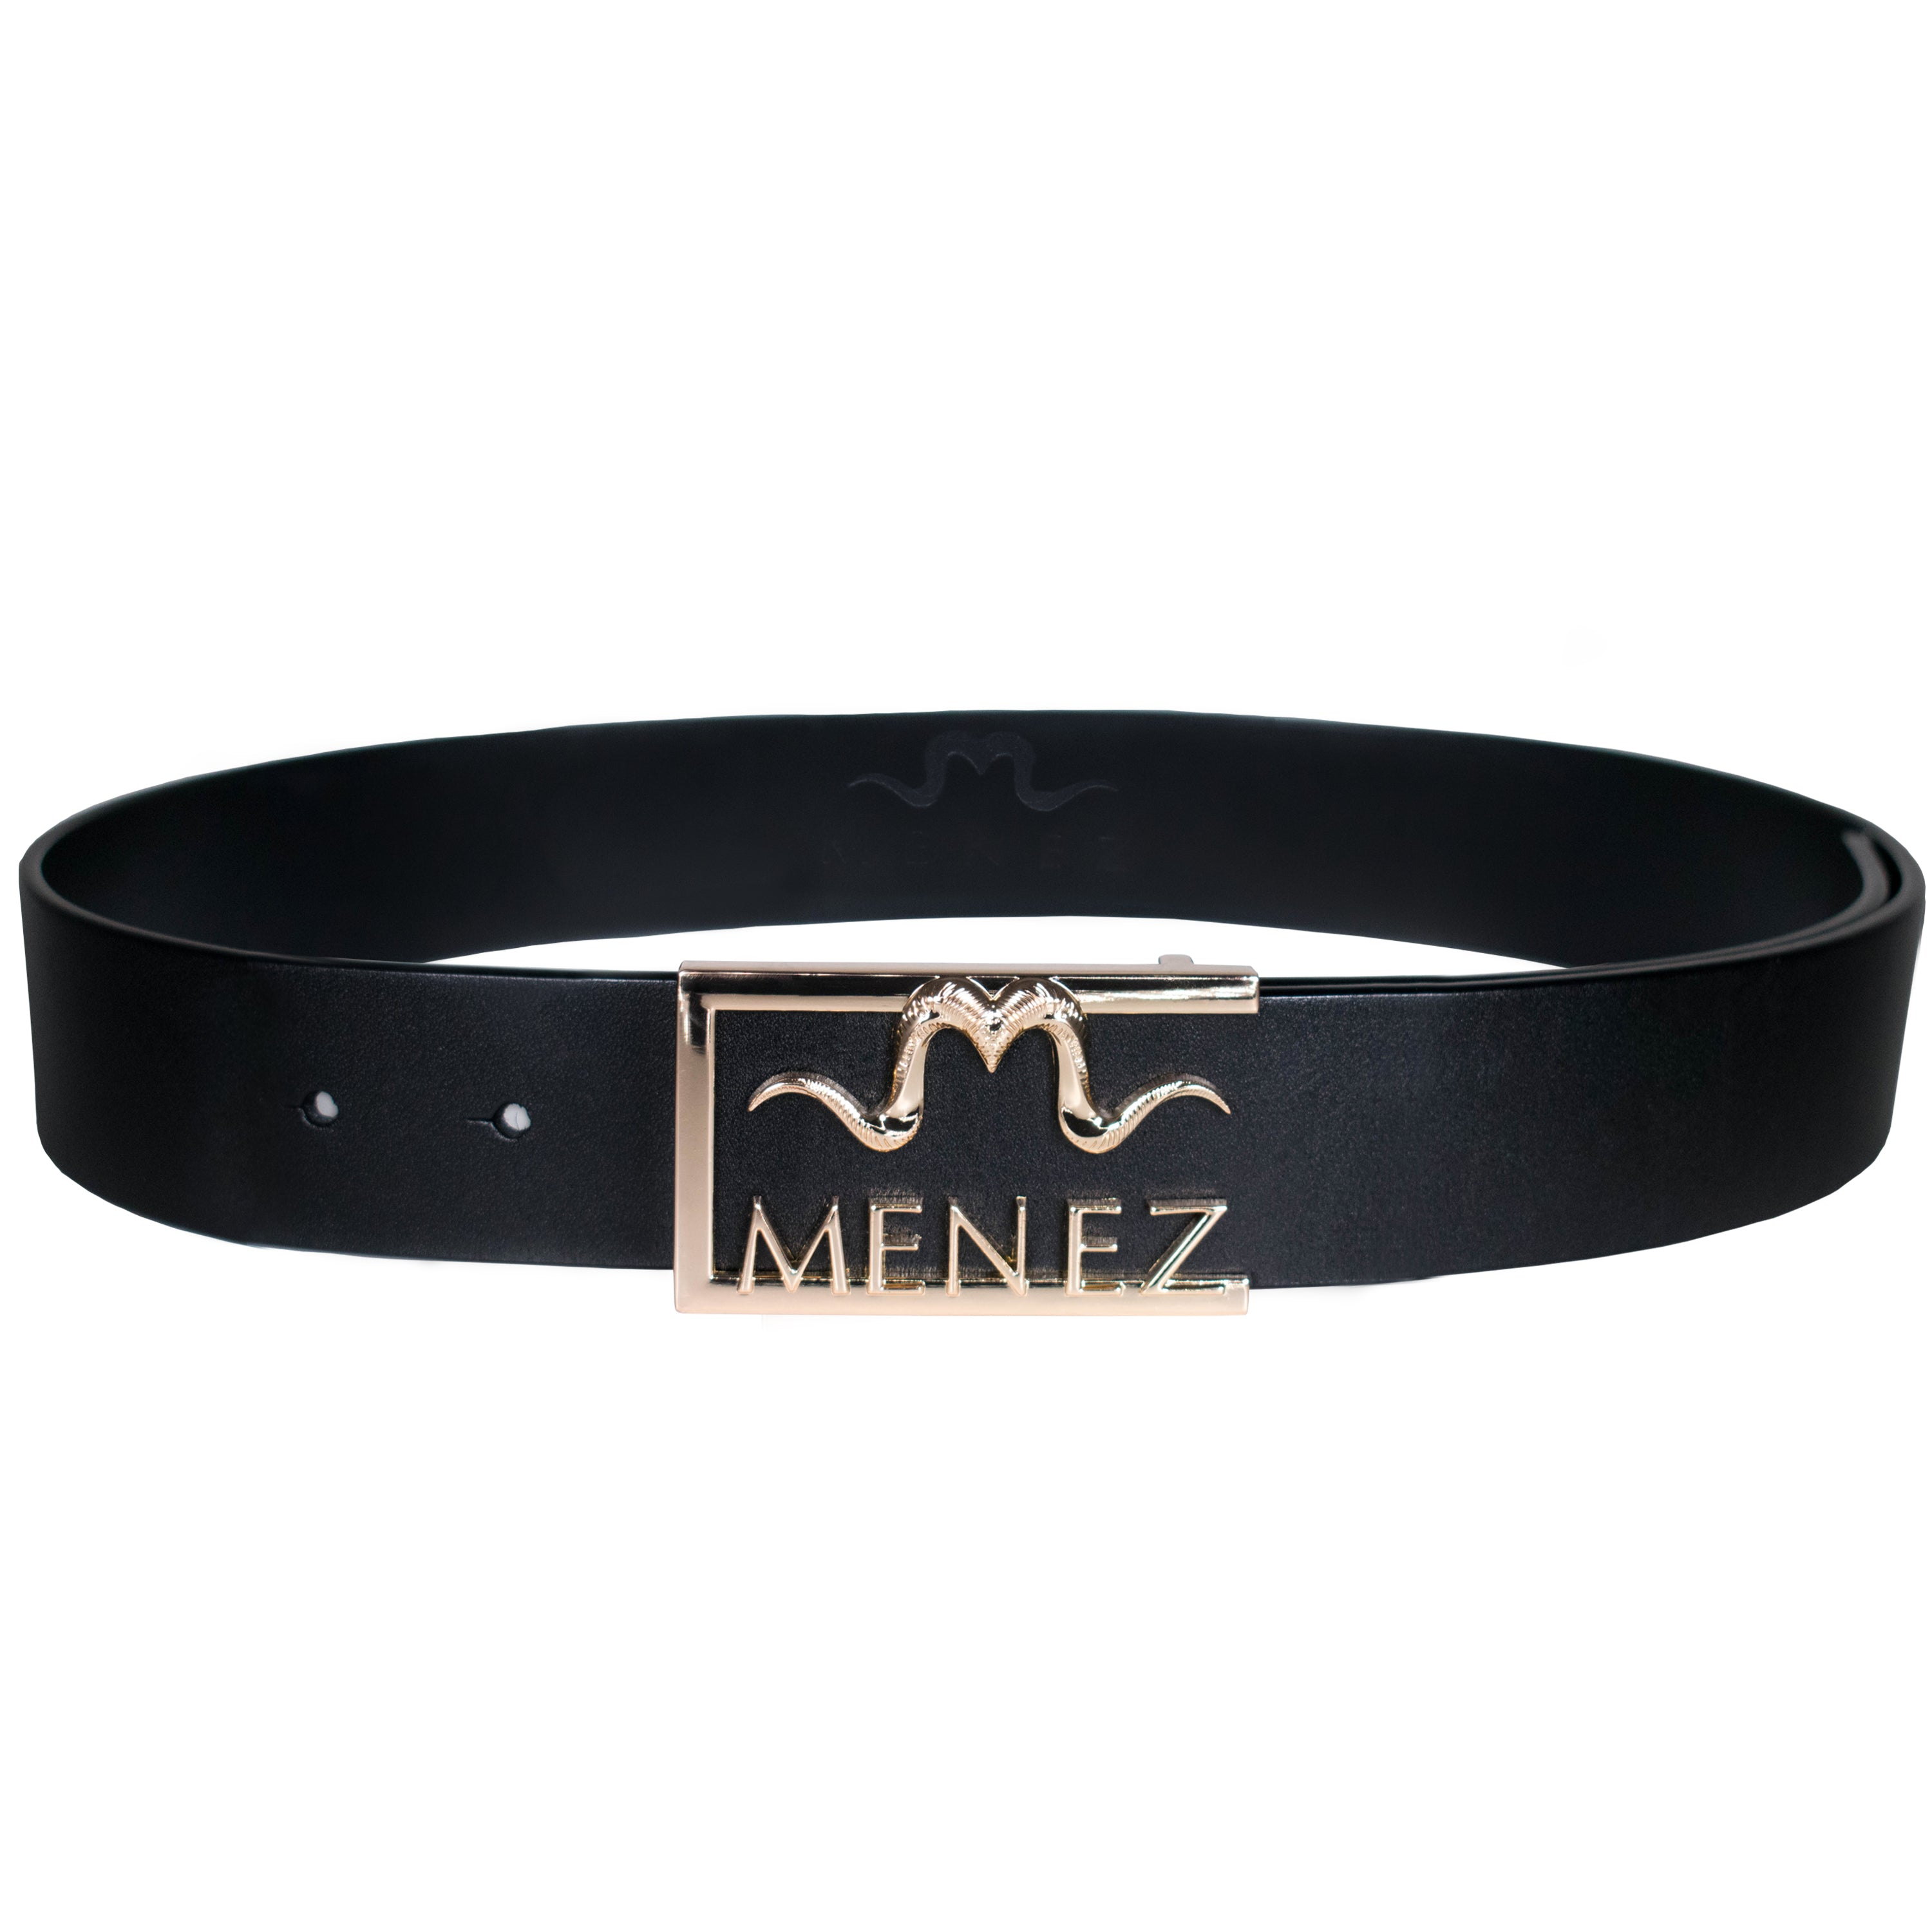 "MENEZ ""M"" HORNS BLACK LEATHER BELT FOR MEN - MENEZ"